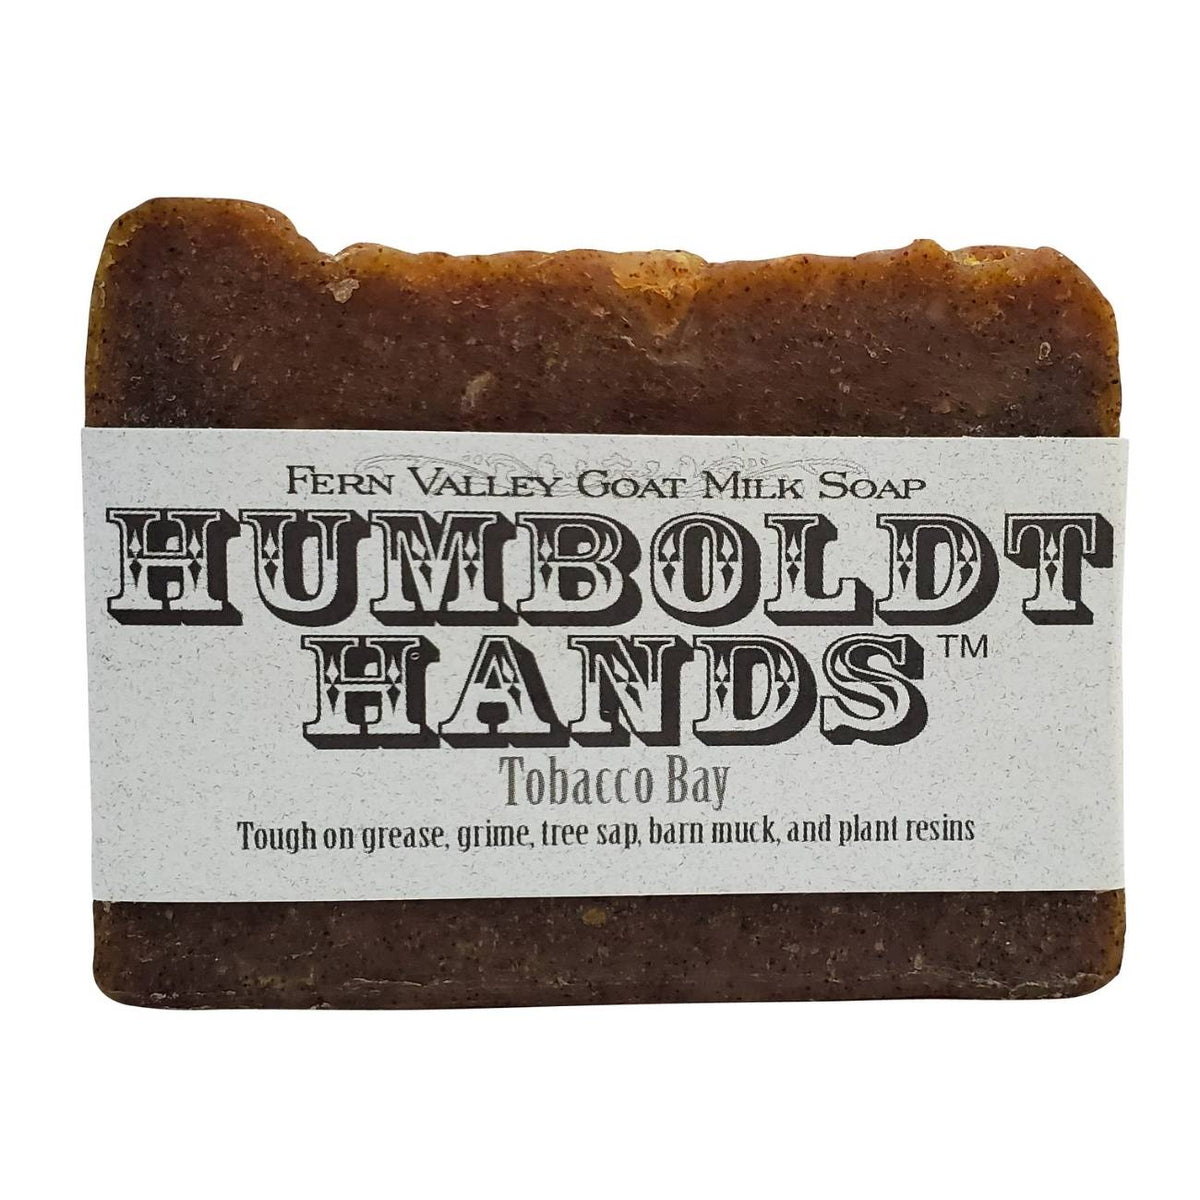 Humboldt Hands Gift Set | Great Smelling Exfoliating Soap + Shower Bar